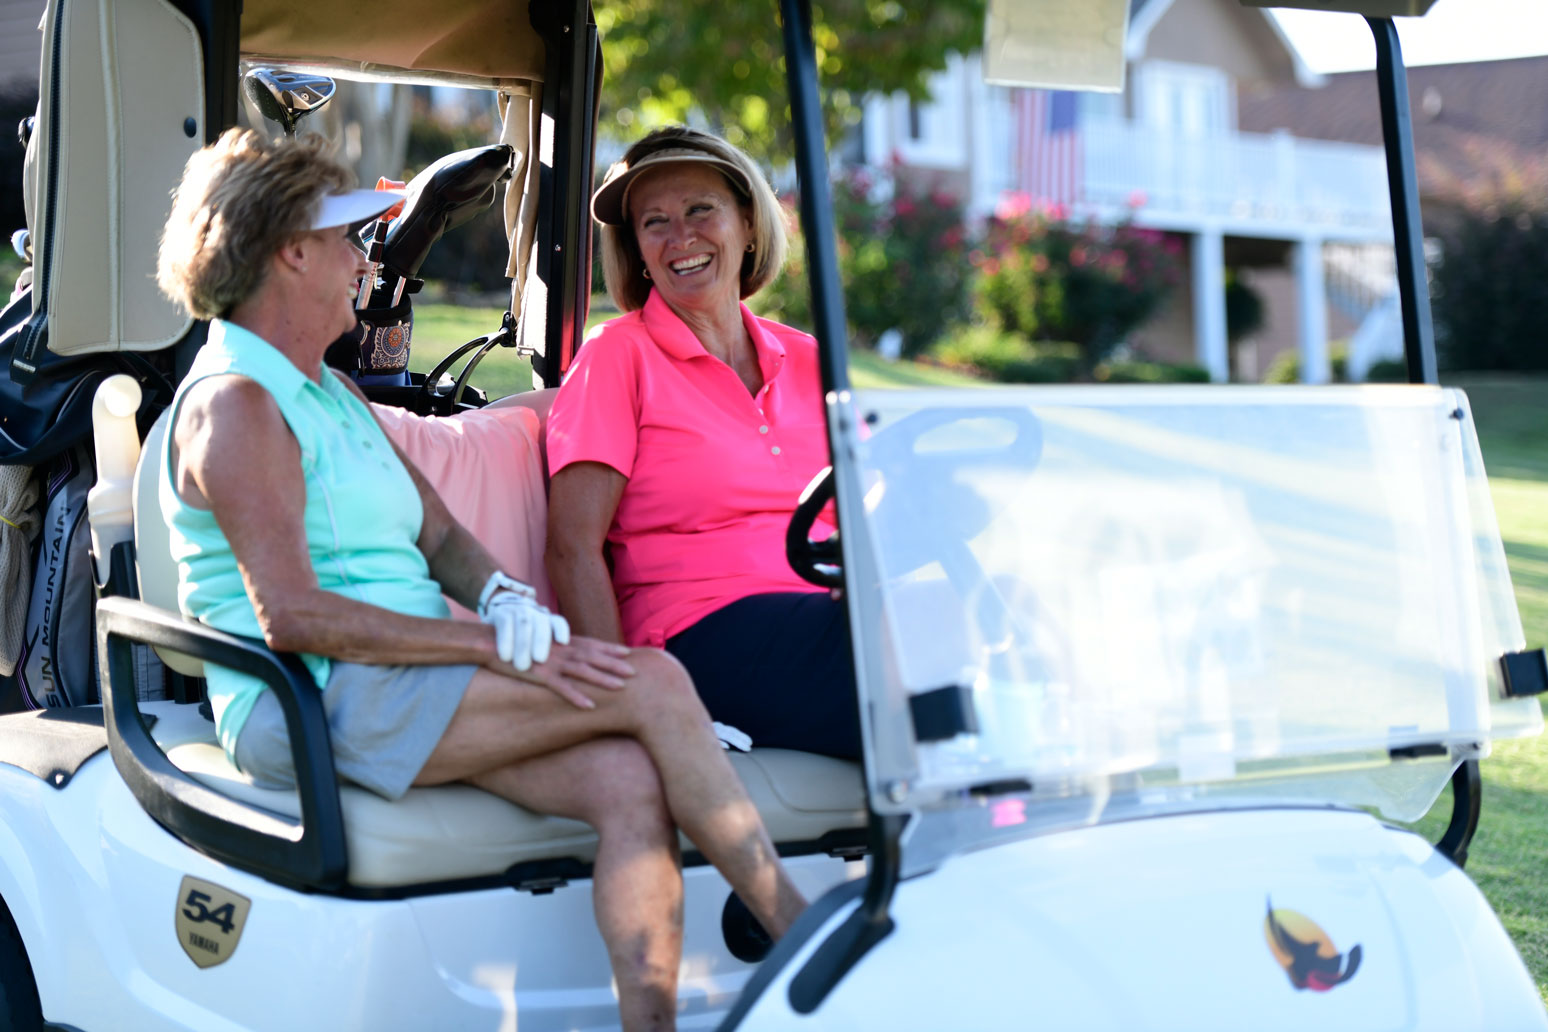 Ladies in the golf cart enjoying a conversation while taking a break from golfing.